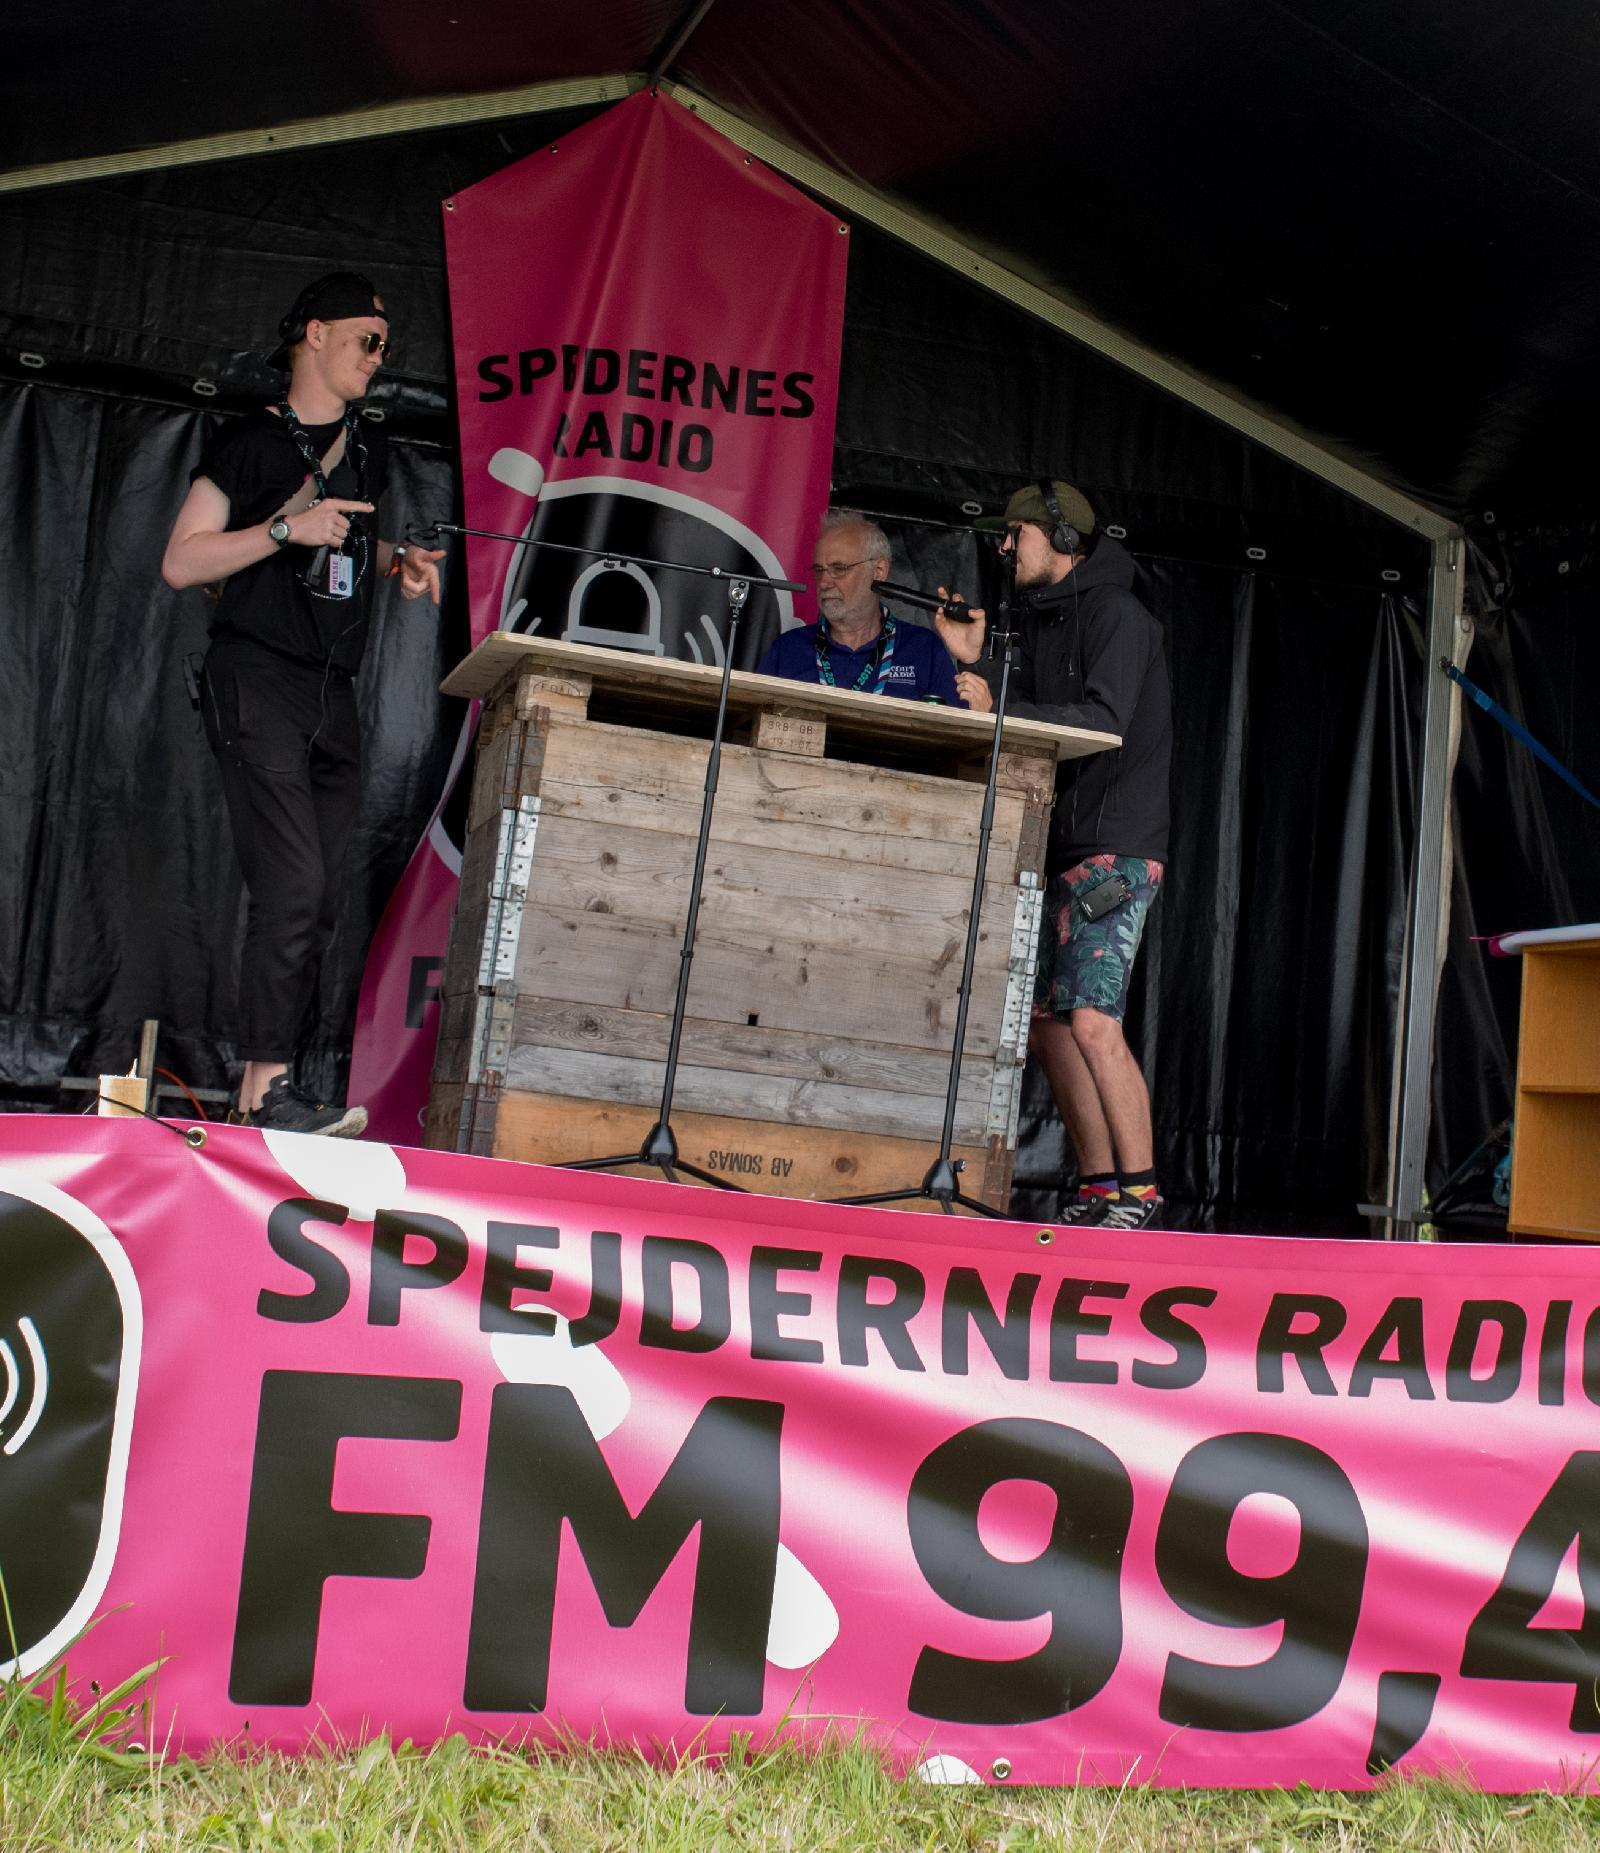 Thedor D. Kirk from Gentofte, Steffan Nielsen from Vejle and Roger Thorne from Glostershire, are on the radio scene sending 'Spejdernes Radio'.